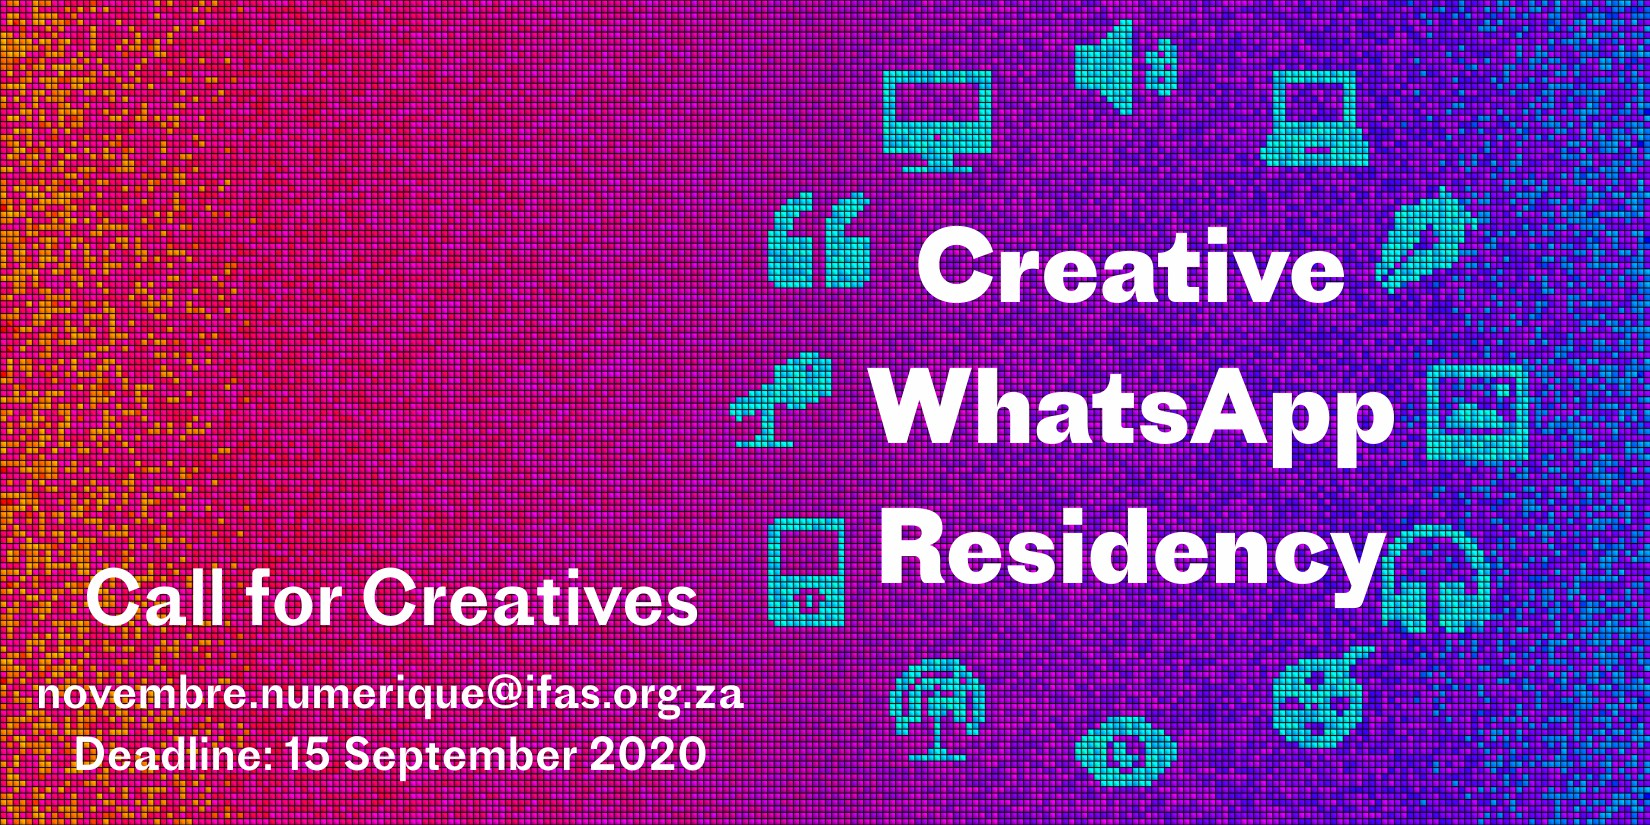 Creative WhatsApp Residency